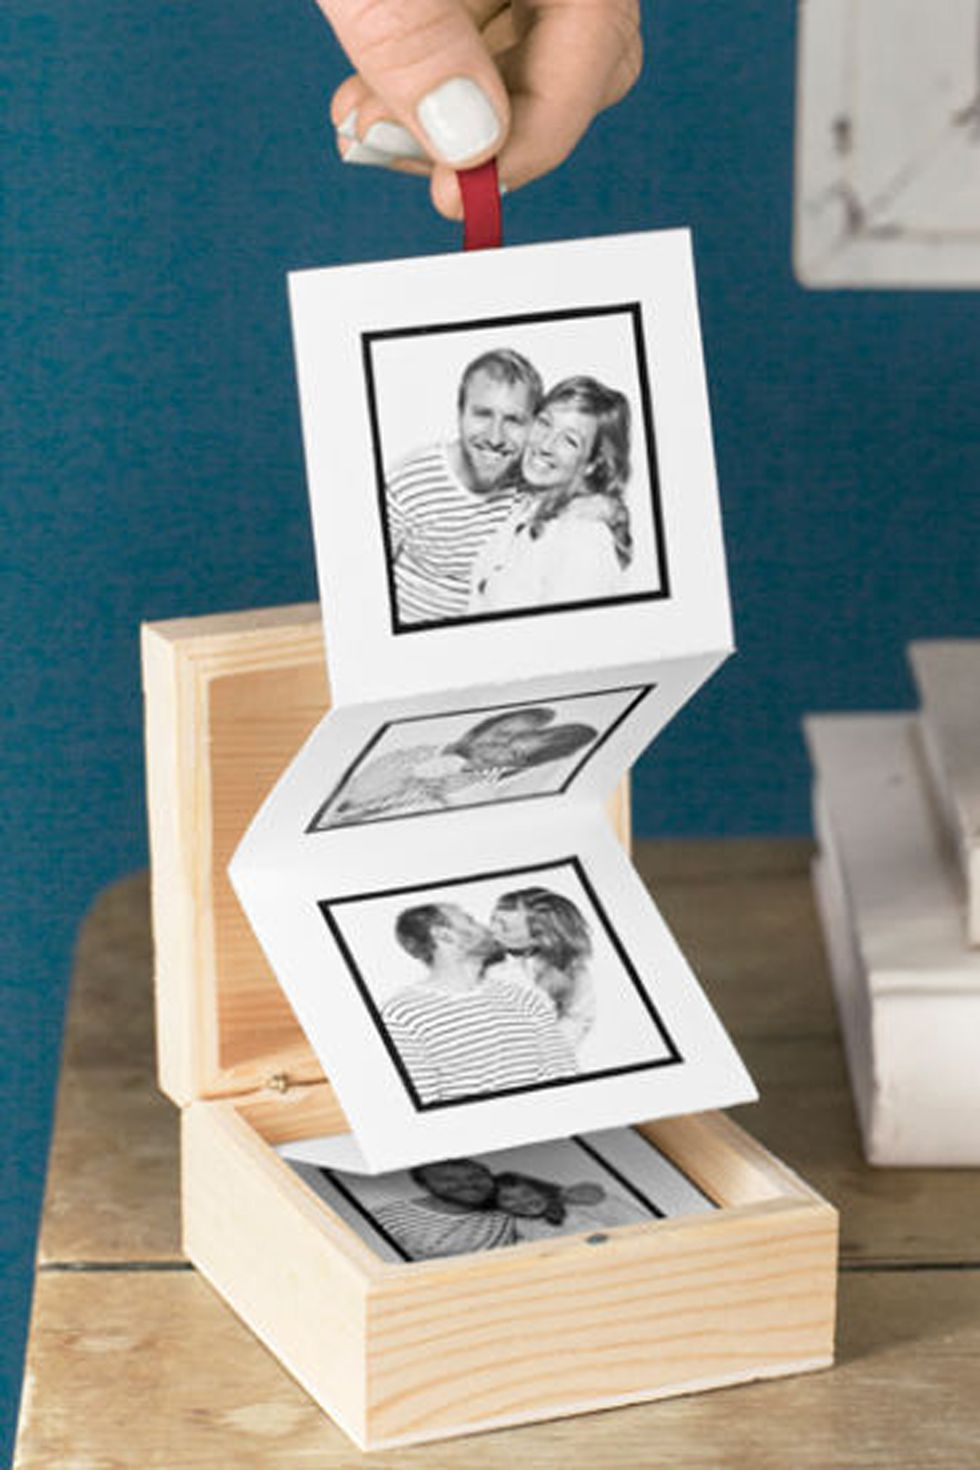 Unique Mother's Day Photo Gift Ideas - Accordion Photo Album via Country Living | https://www.roseclearfield.com